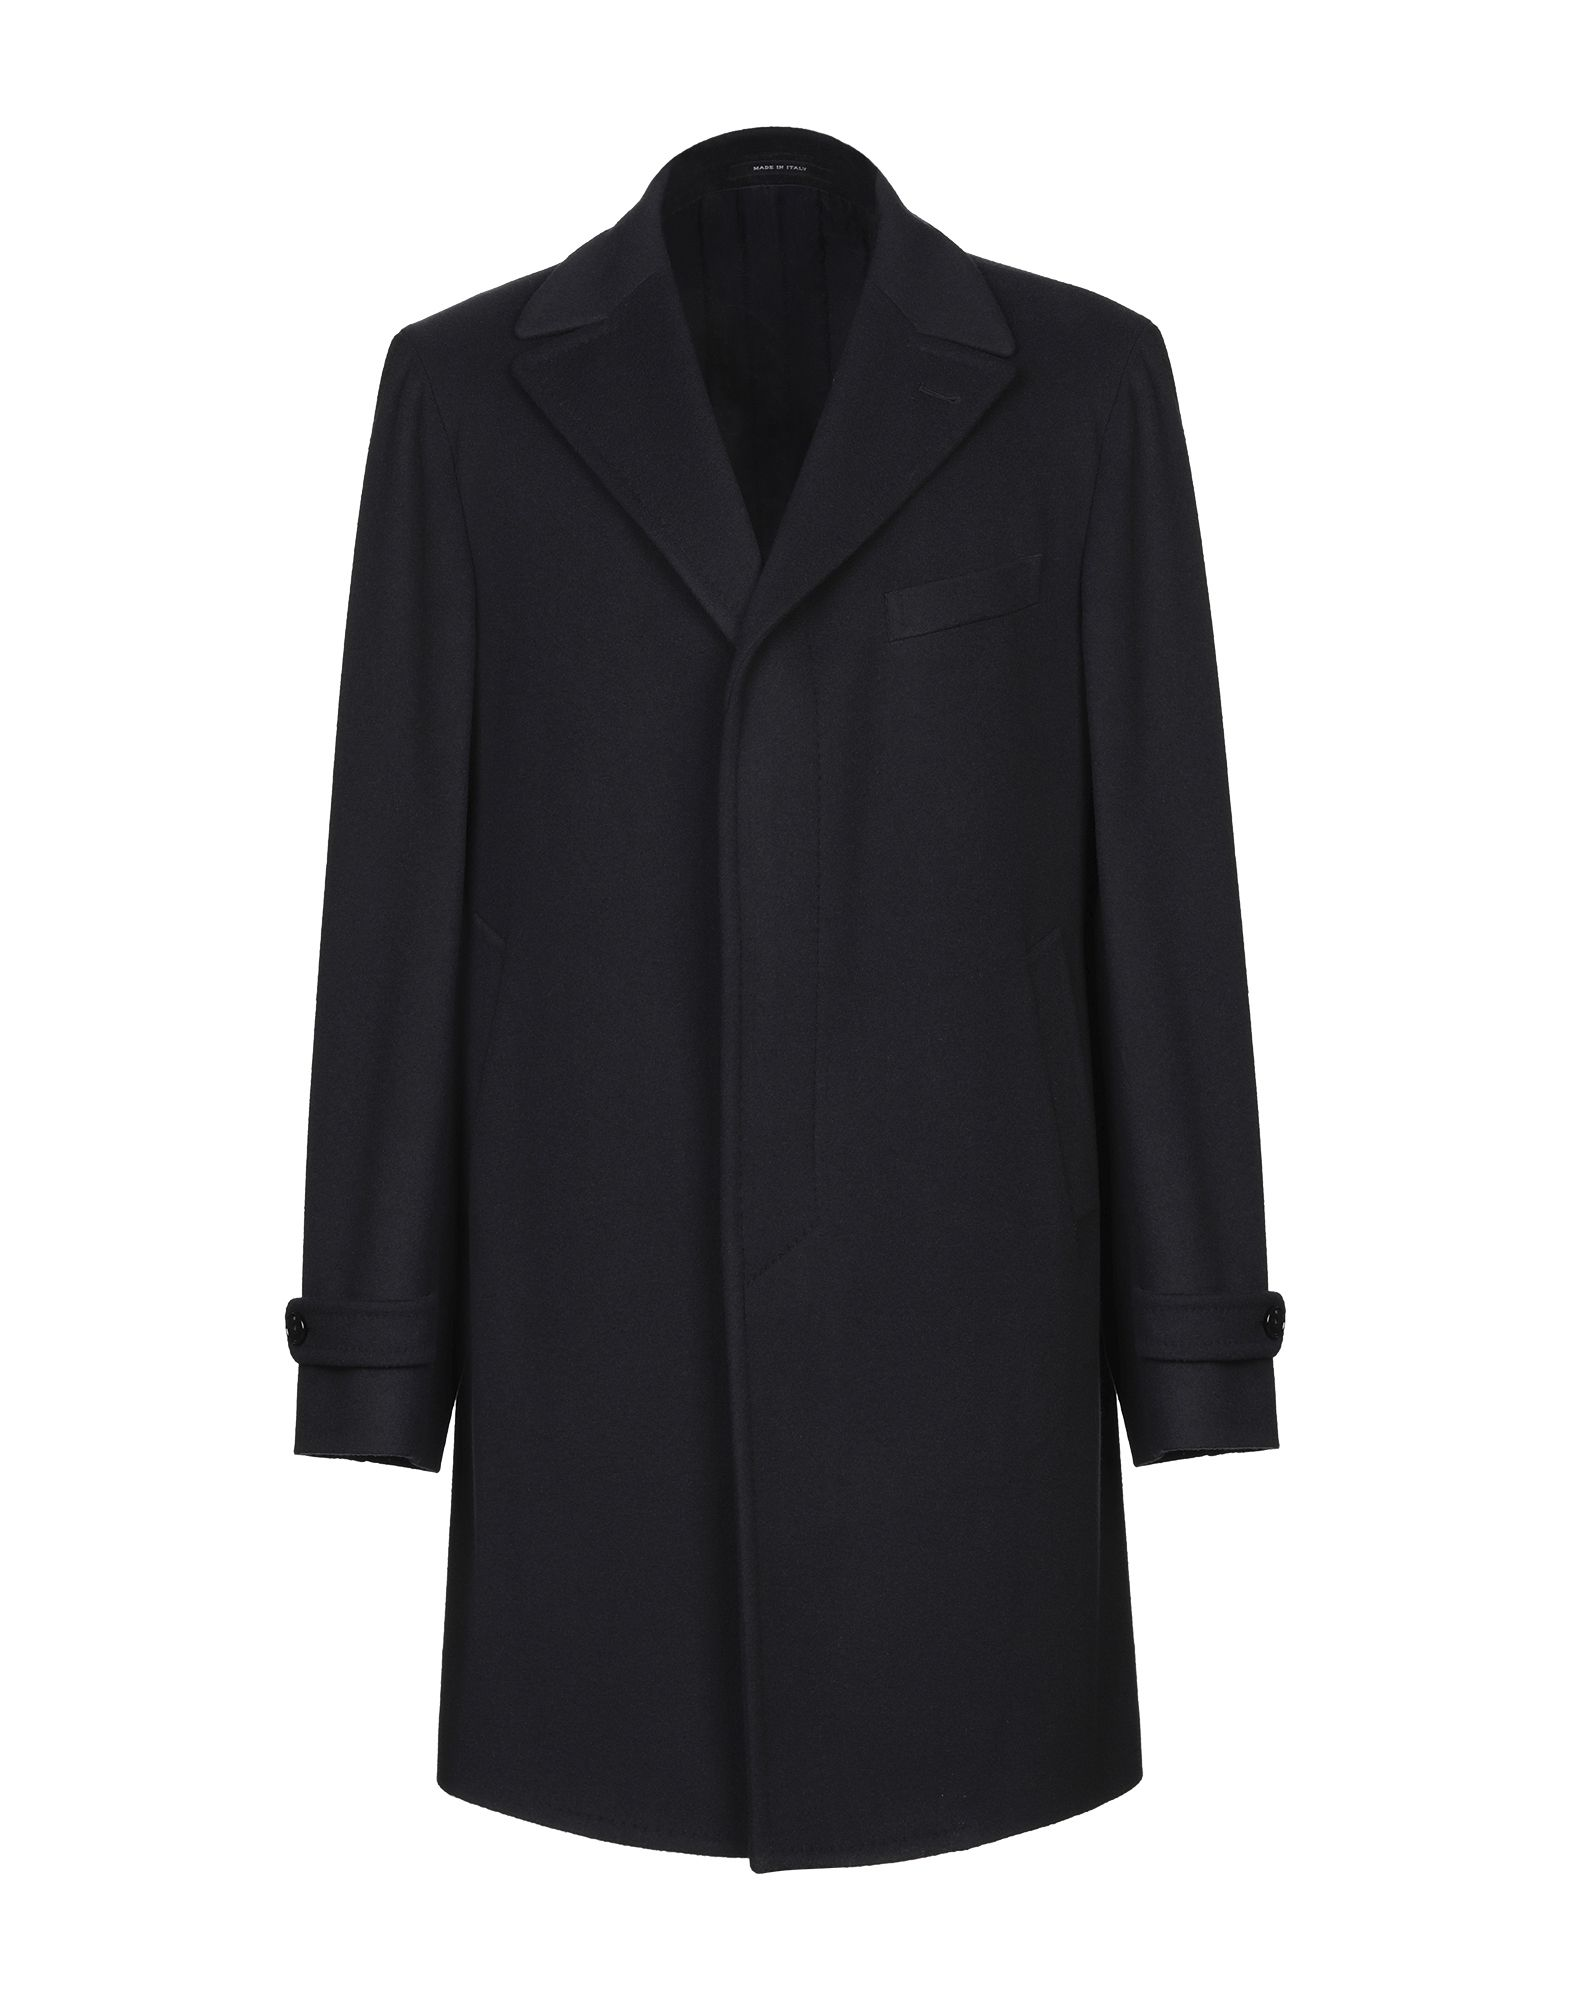 TAGLIATORE Coats. baize, half-belt, basic solid color, single-breasted, button closing, lapel collar, multipockets, long sleeves, strapped cuffs, rear slit, semi-lined, single-breasted jacket. 90% Virgin Wool, 10% Cashmere